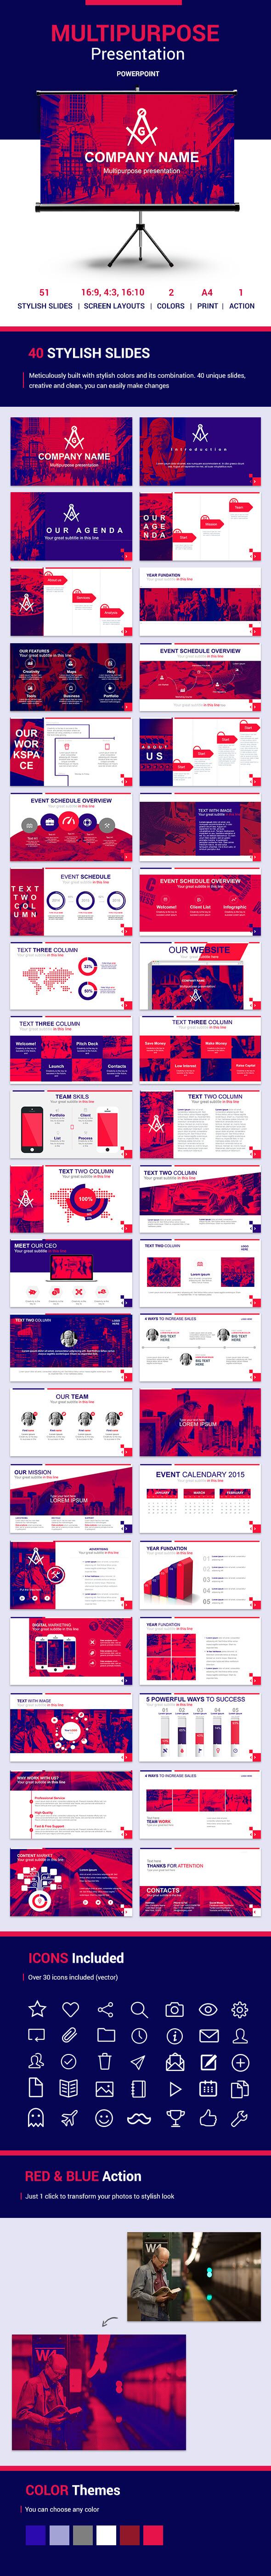 RED and BLUE Powerpoint Sliders Template - Business PowerPoint Templates